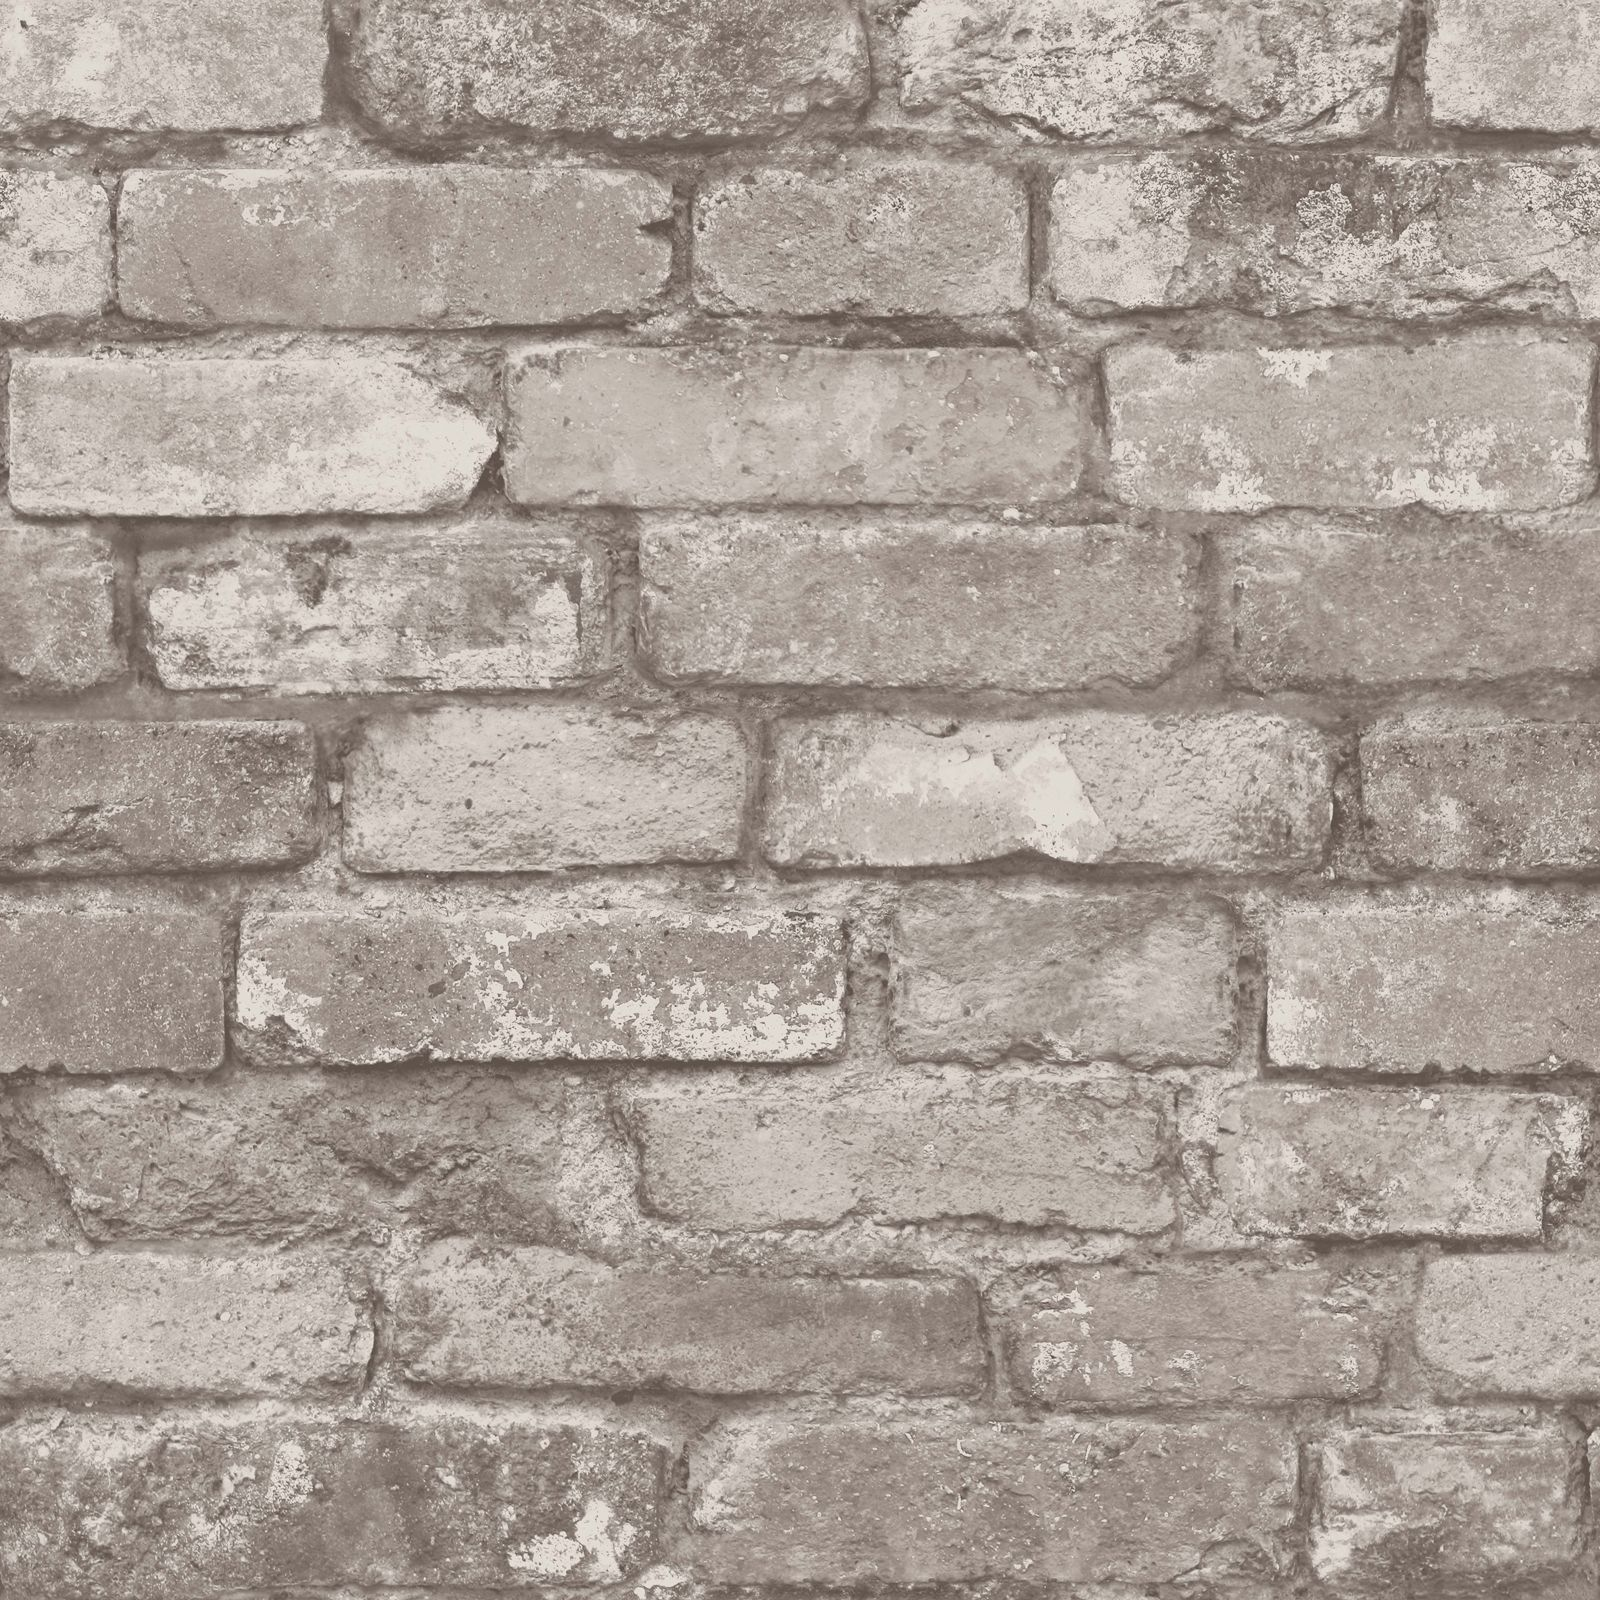 RUSTIC BRICK EFFECT WALLPAPER 10m SILVER GREY NEW